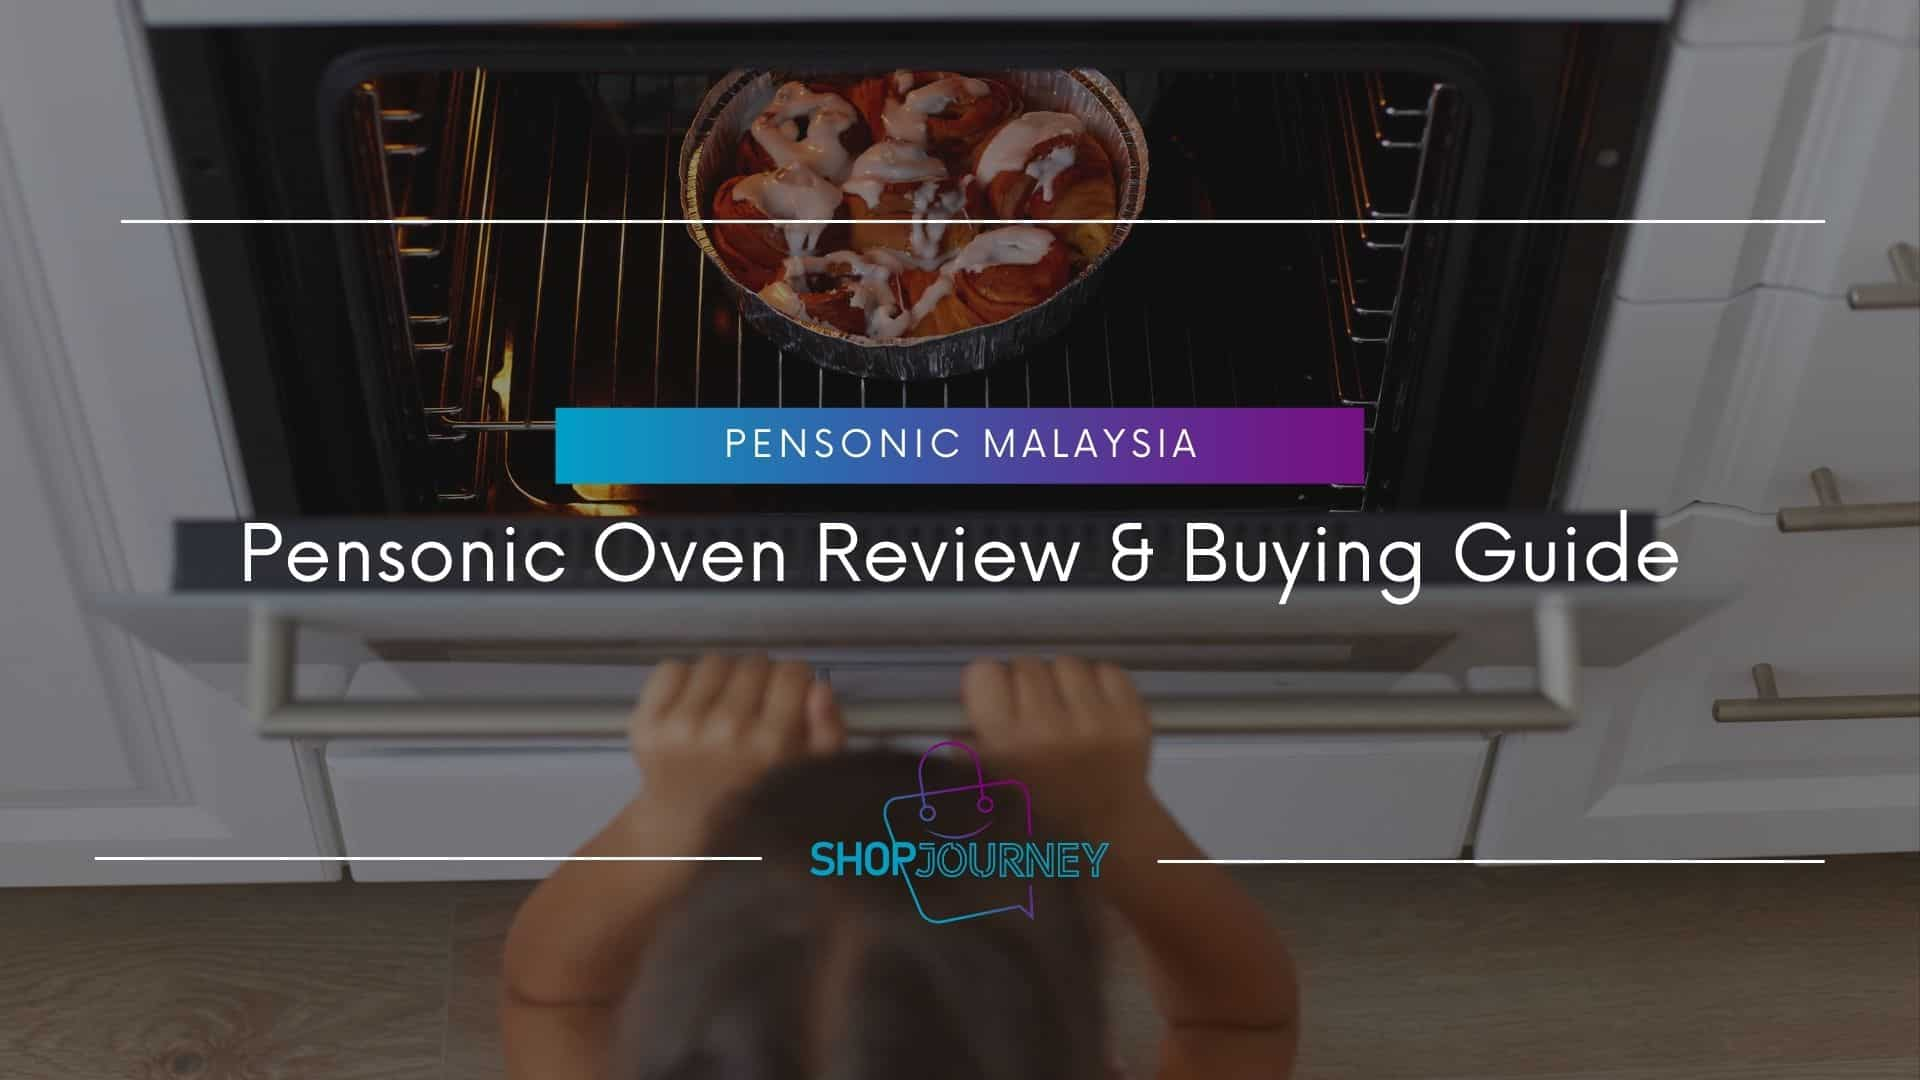 Pensonic Oven Review & Buying Guide - Shop Journey